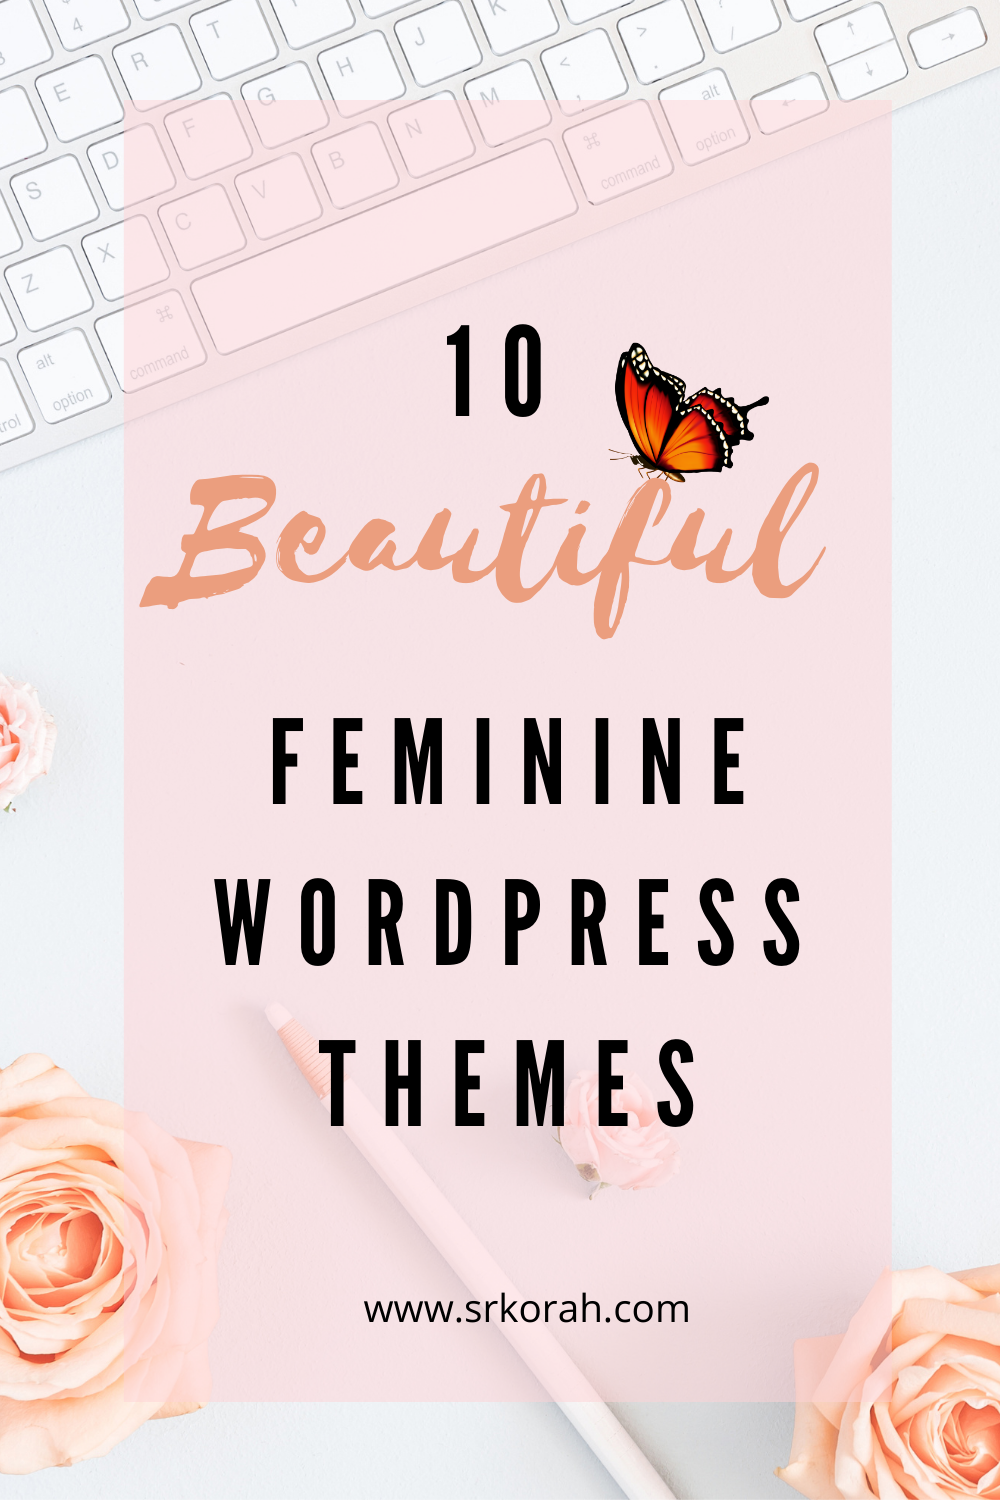 10 Beautiful Feminine WordPress Theme